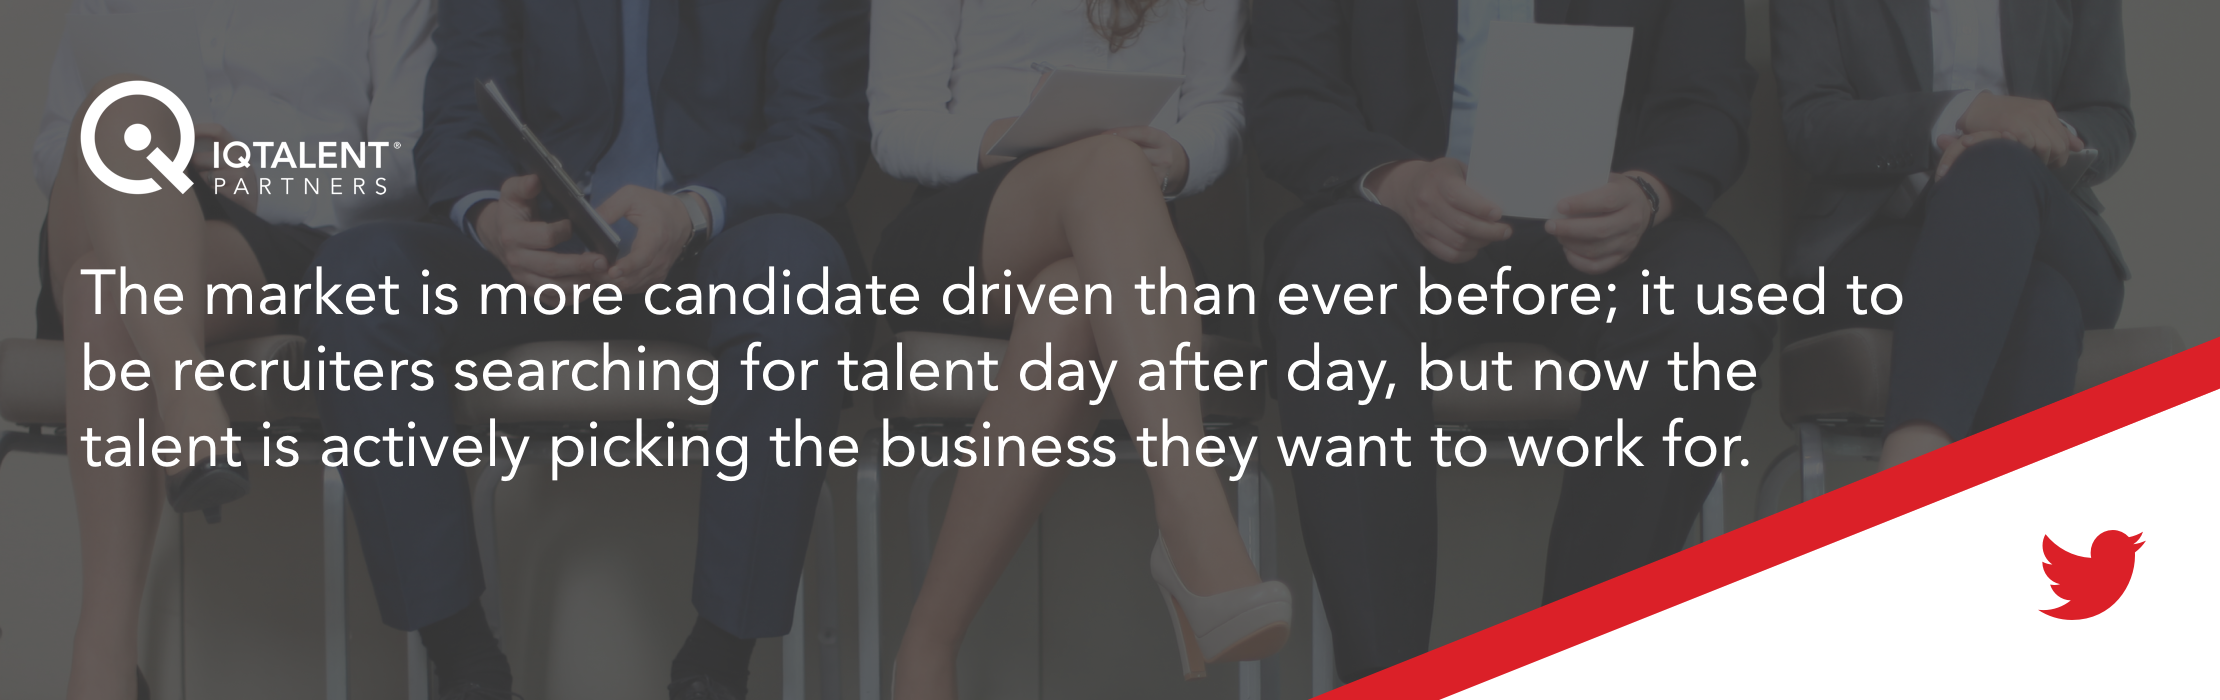 The market is more candidate driven than ever before; it used to be recruiters searching for talent day after day, but now the talent is actively picking the business they want to work for.